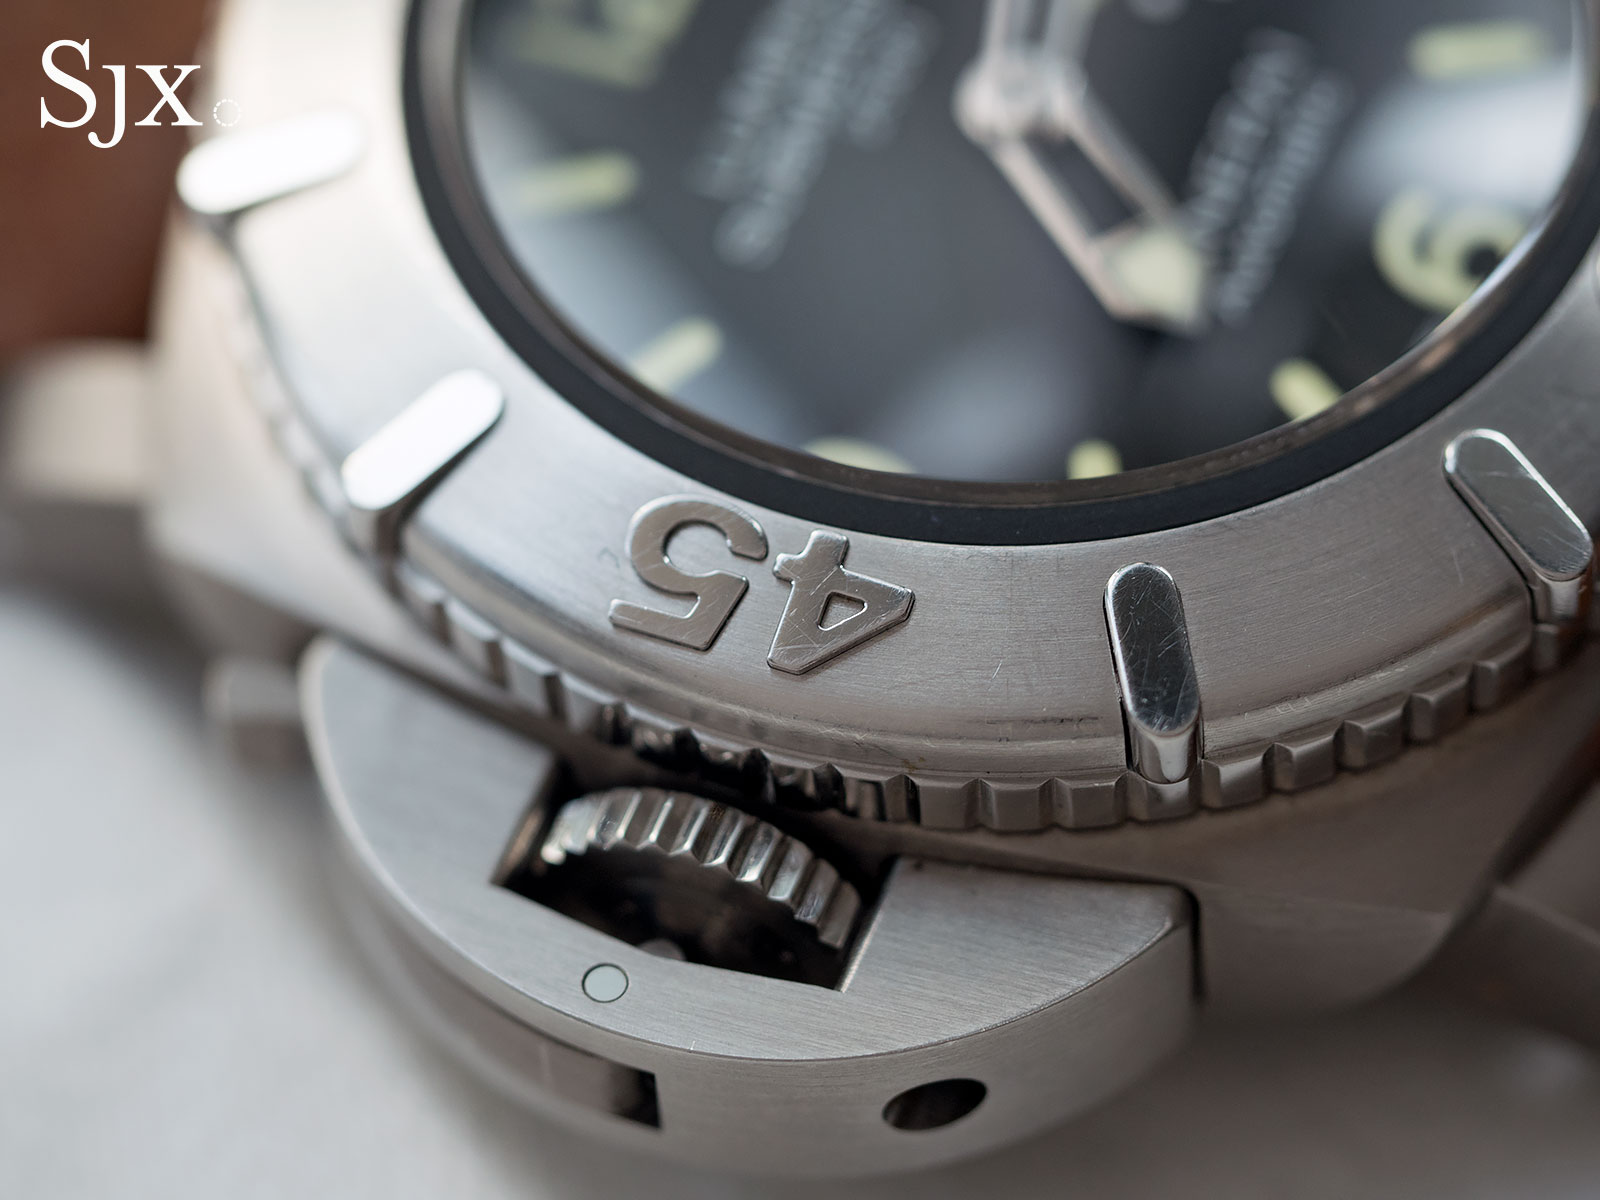 Panerai Submersible 2500 Destro Chronopassion PAM358-2